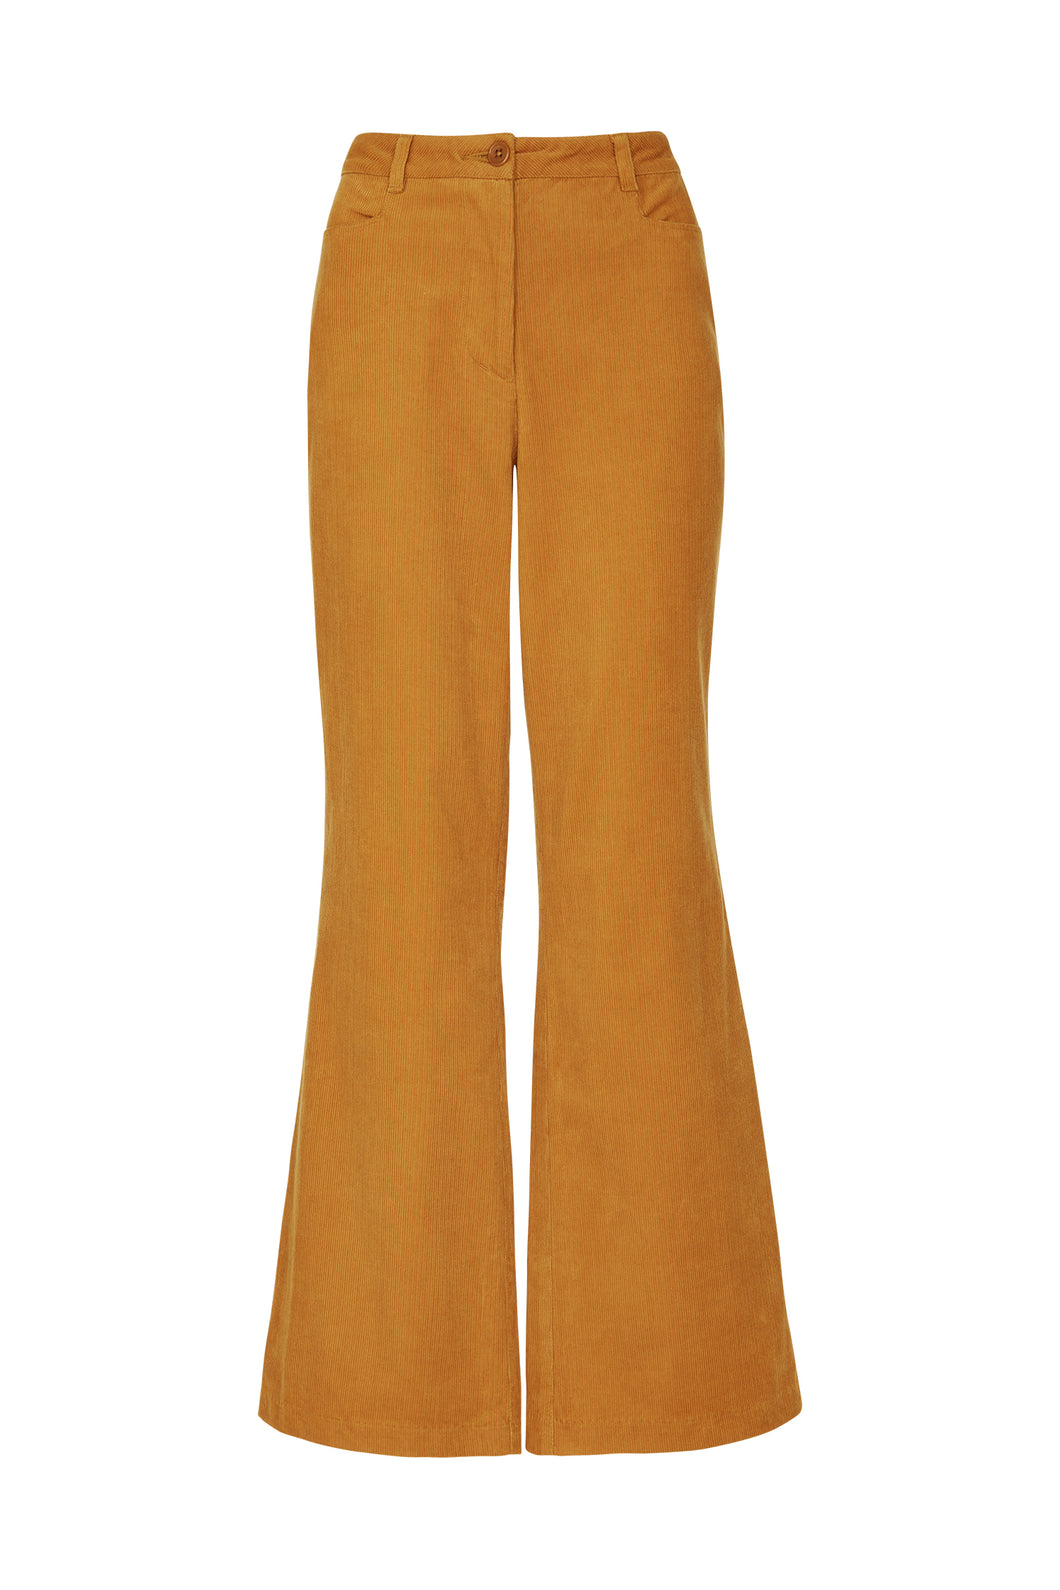 People Tree - Luna Corduroy Trousers Y303UA